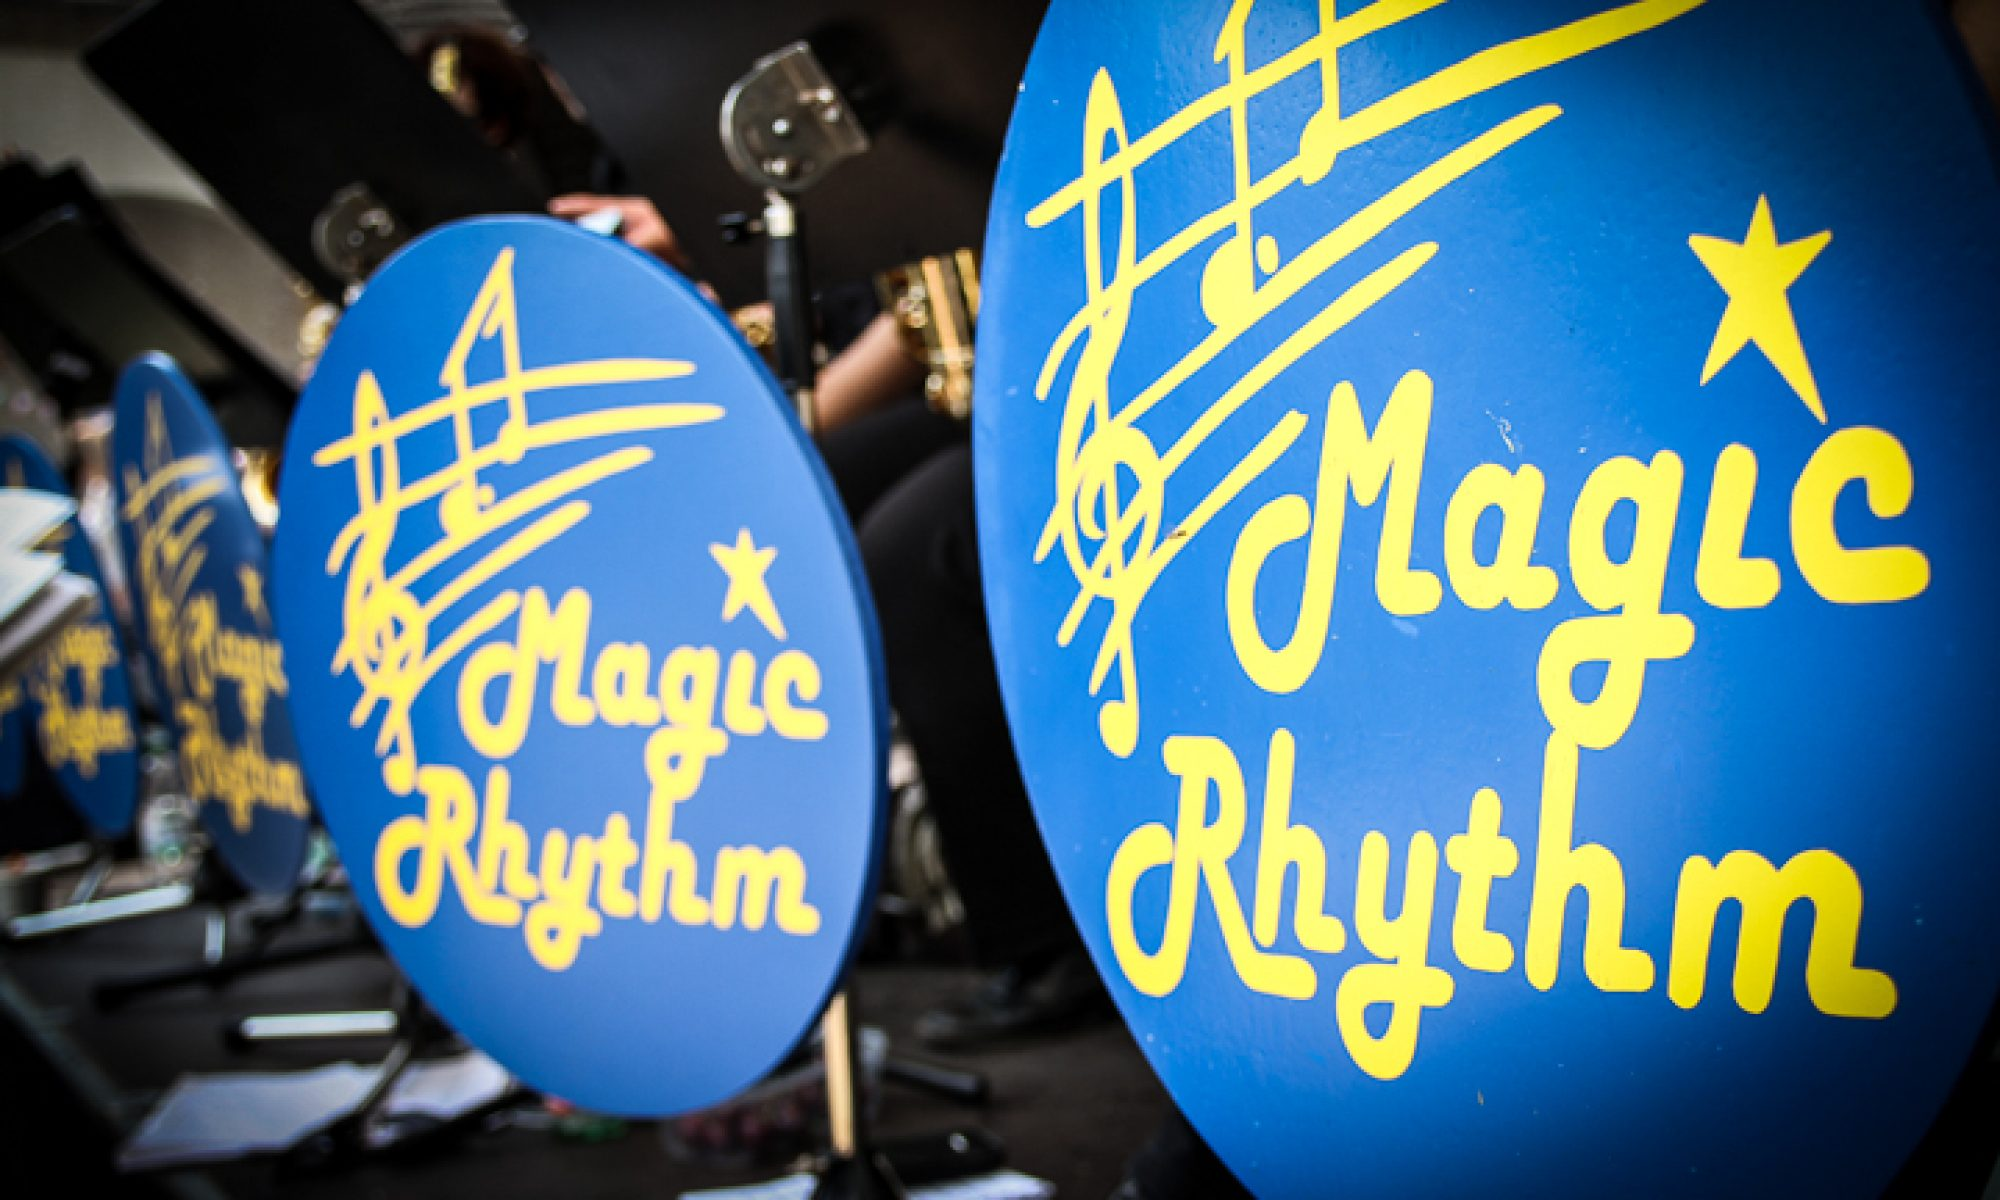 Magic Rhythm